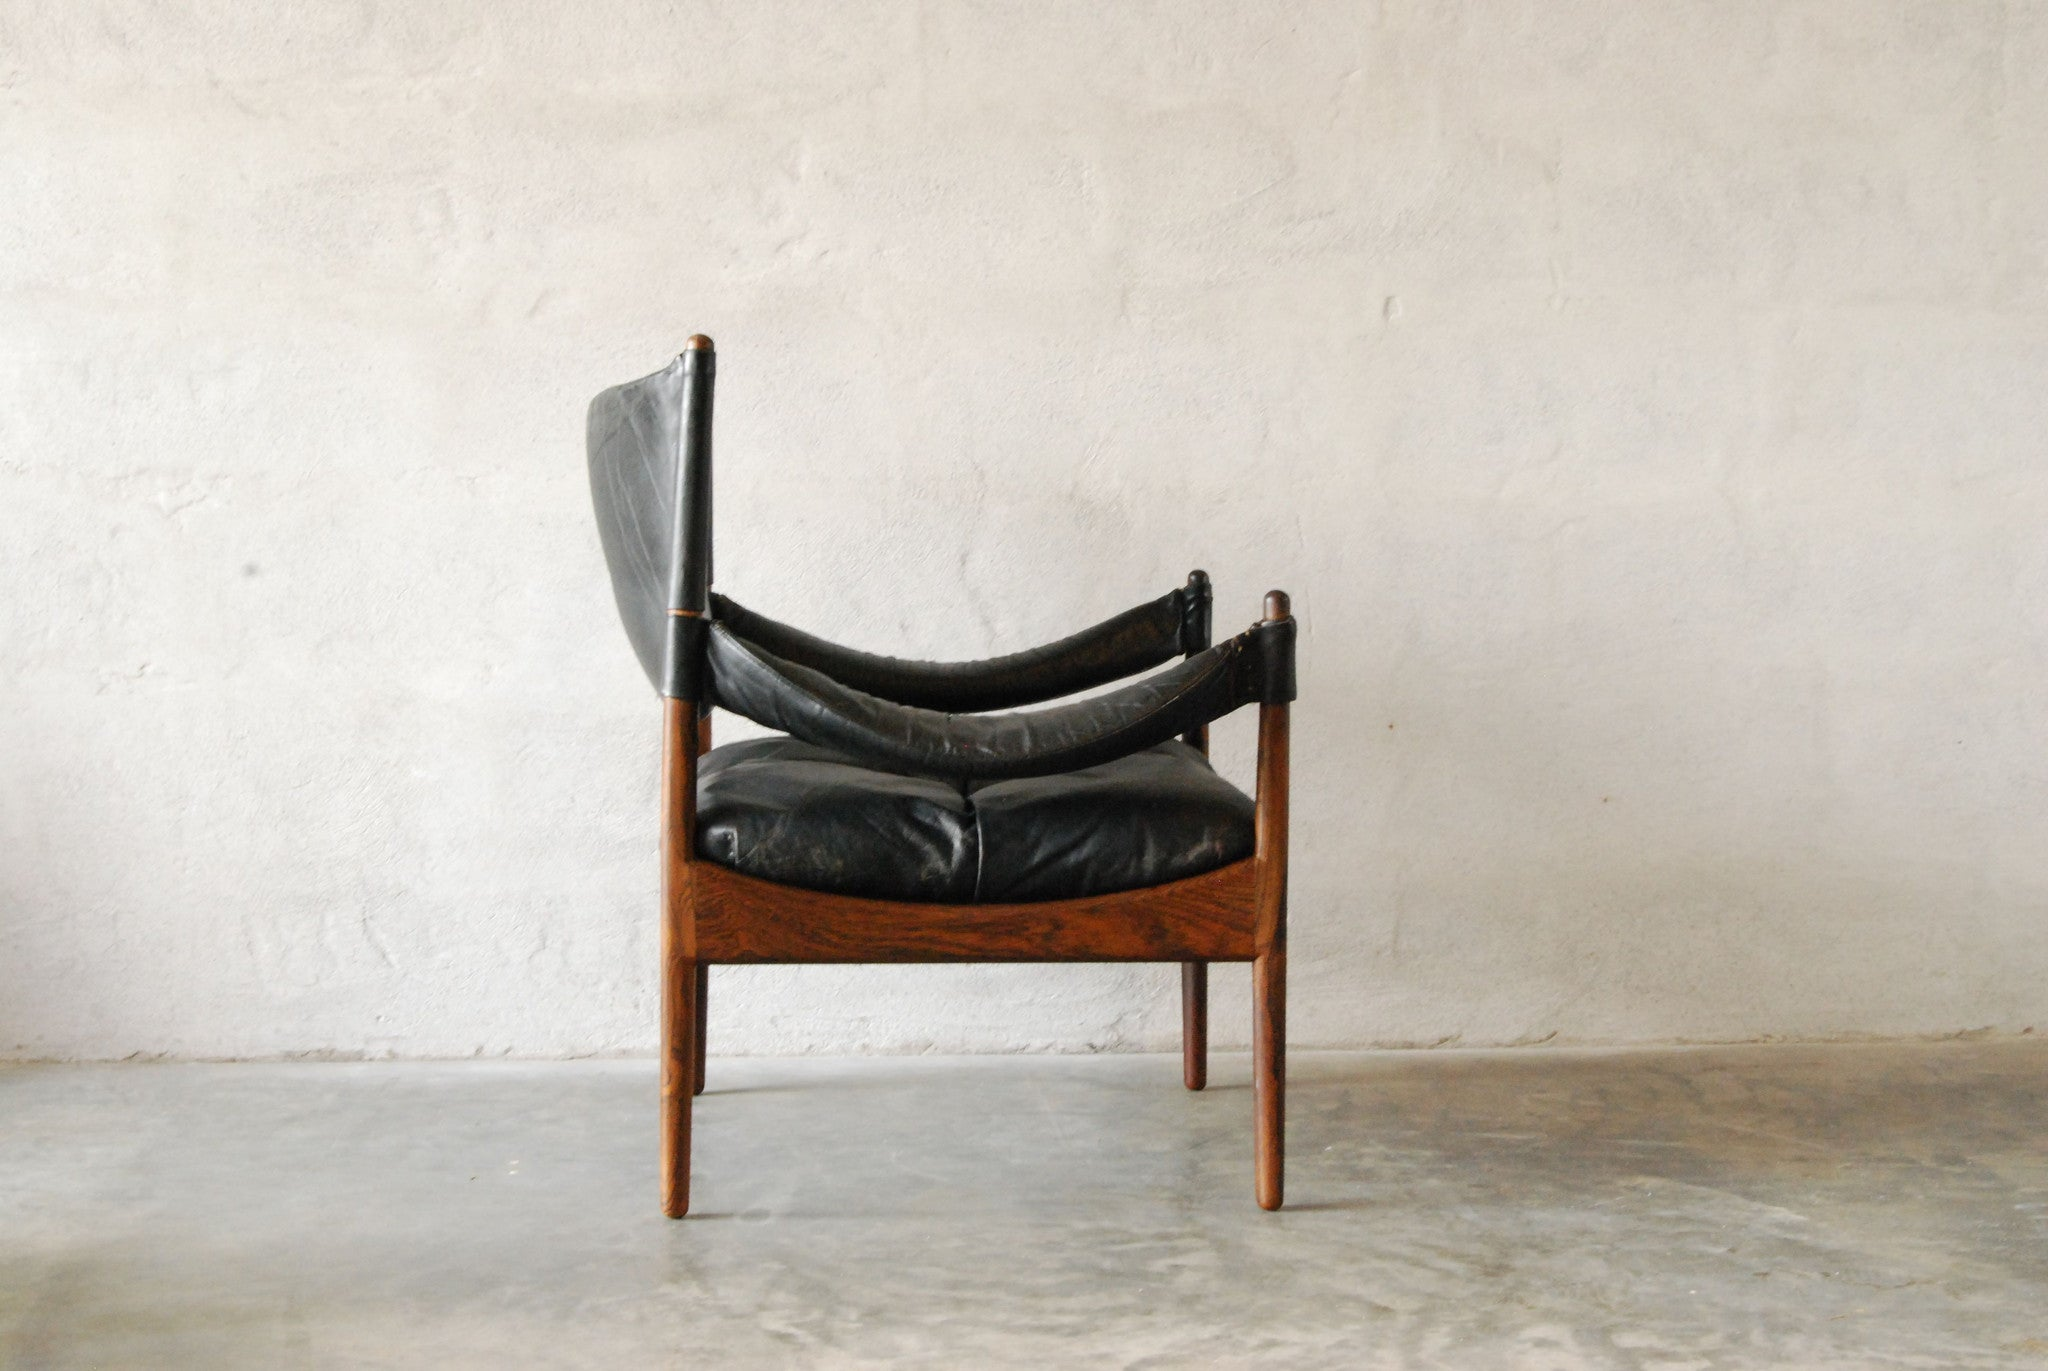 Chase & Sorensen Modus chair and footstool by Kristian Solmer Vedel